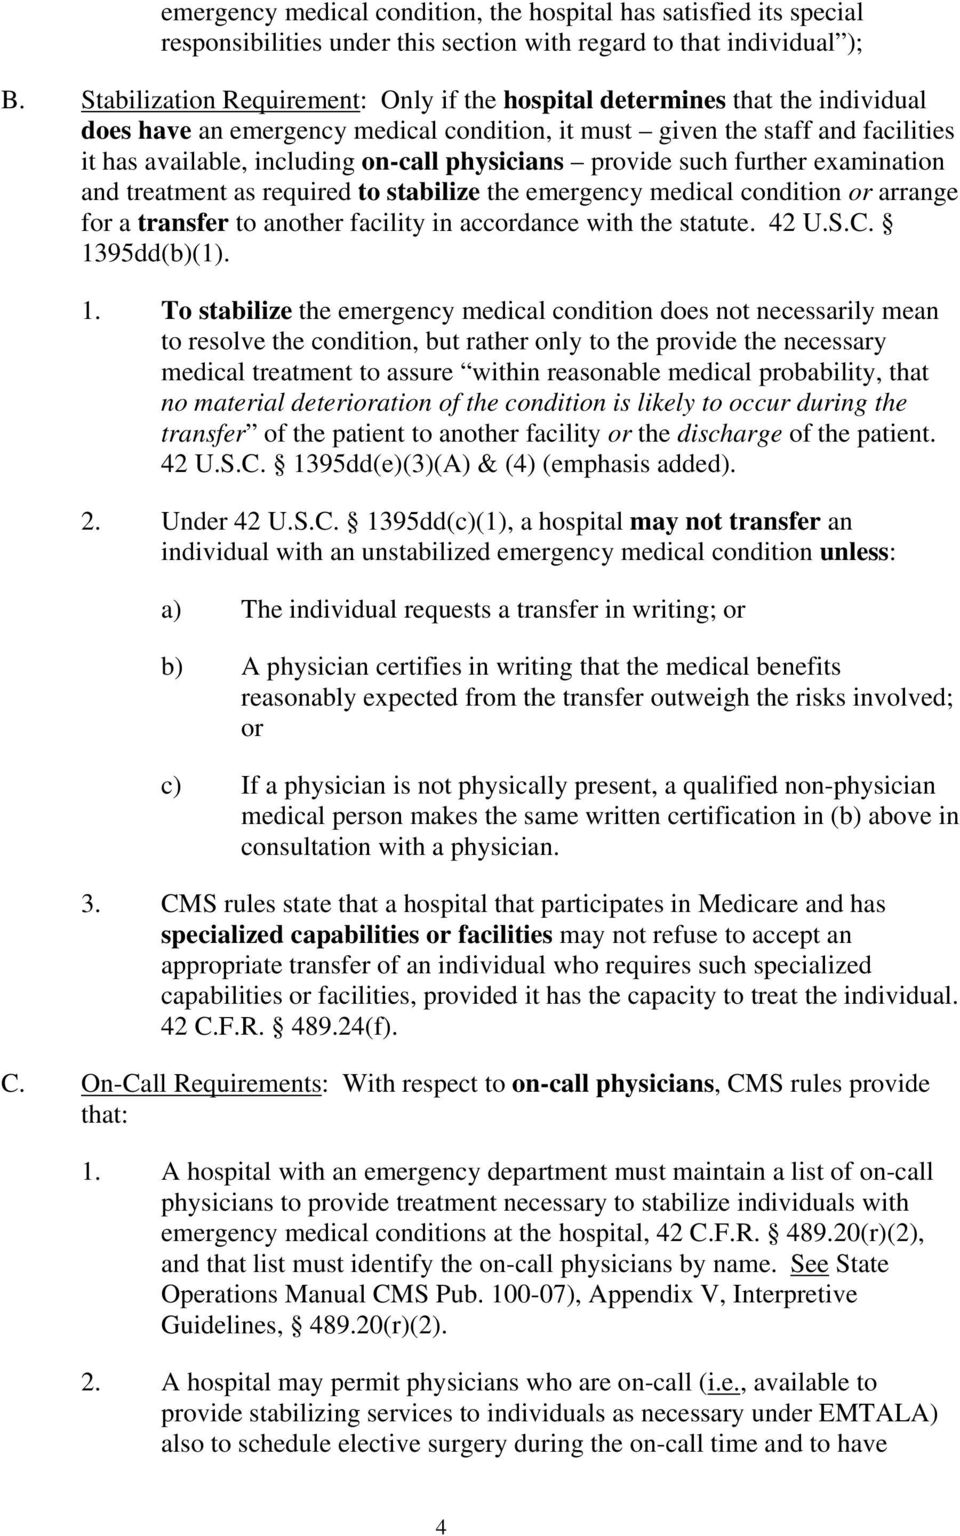 physicians provide such further examination and treatment as required to stabilize the emergency medical condition or arrange for a transfer to another facility in accordance with the statute. 42 U.S.